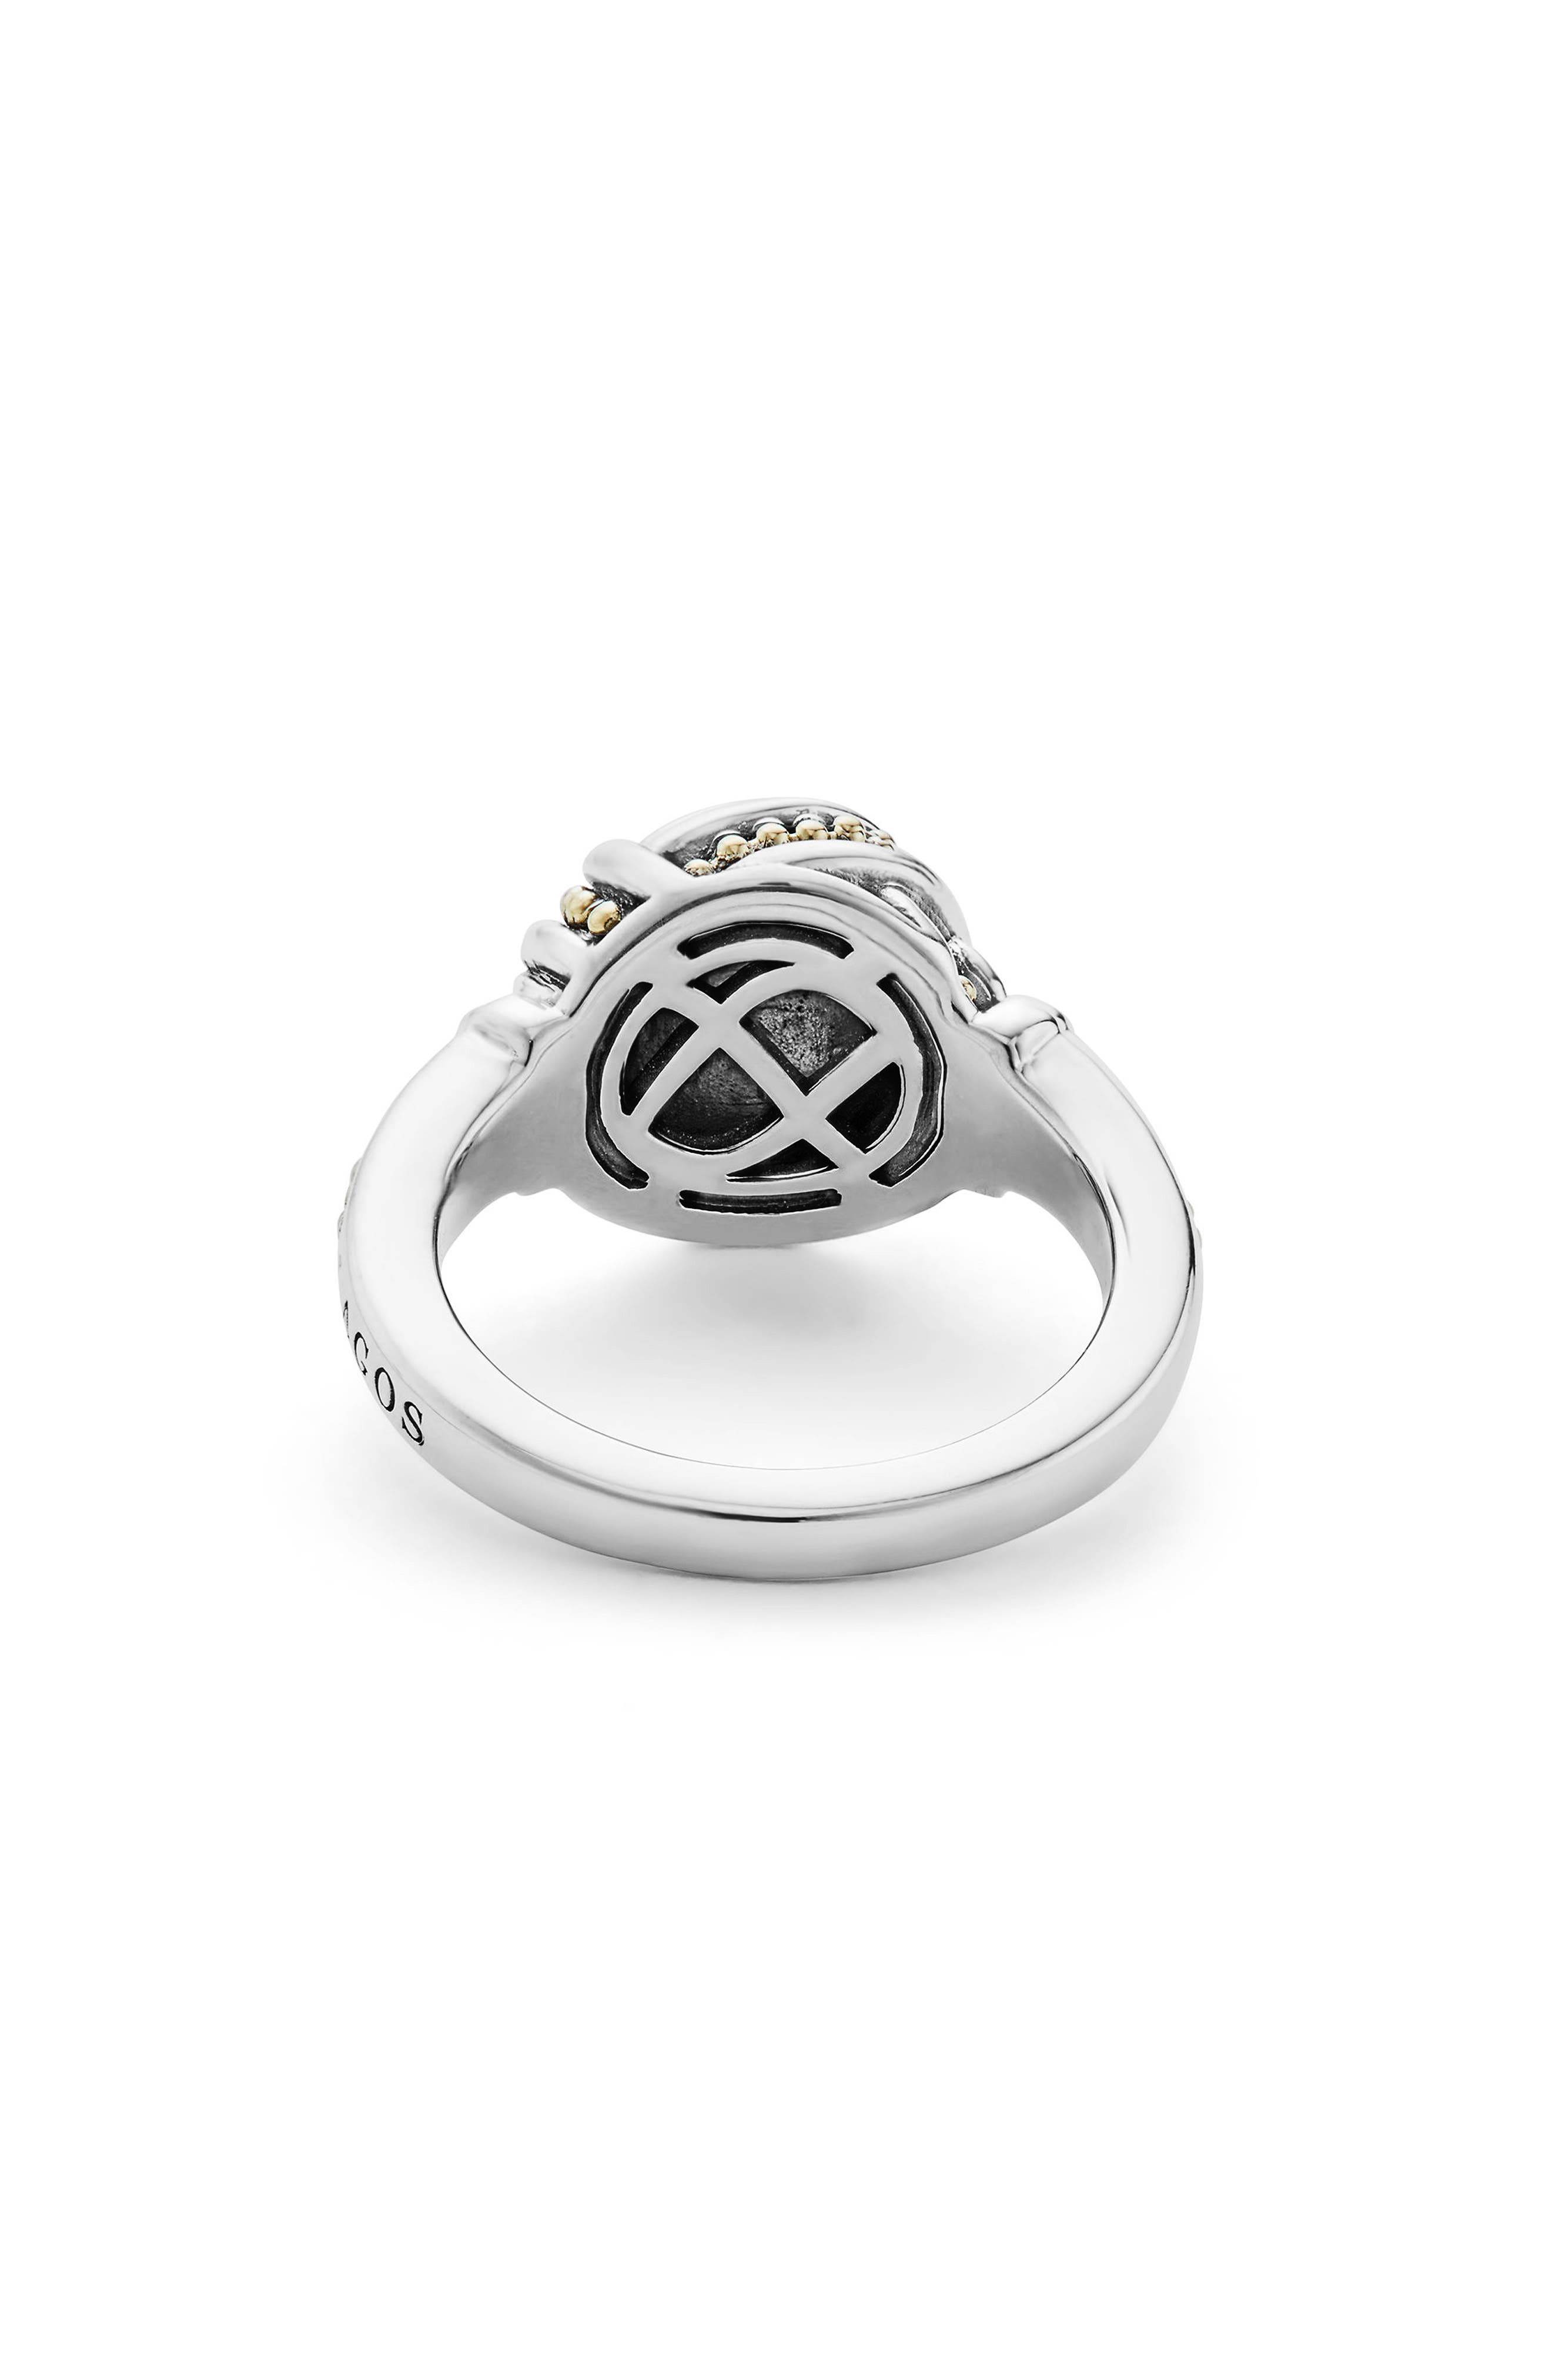 Small Round Ring,                             Alternate thumbnail 3, color,                             SILVER/ GOLD